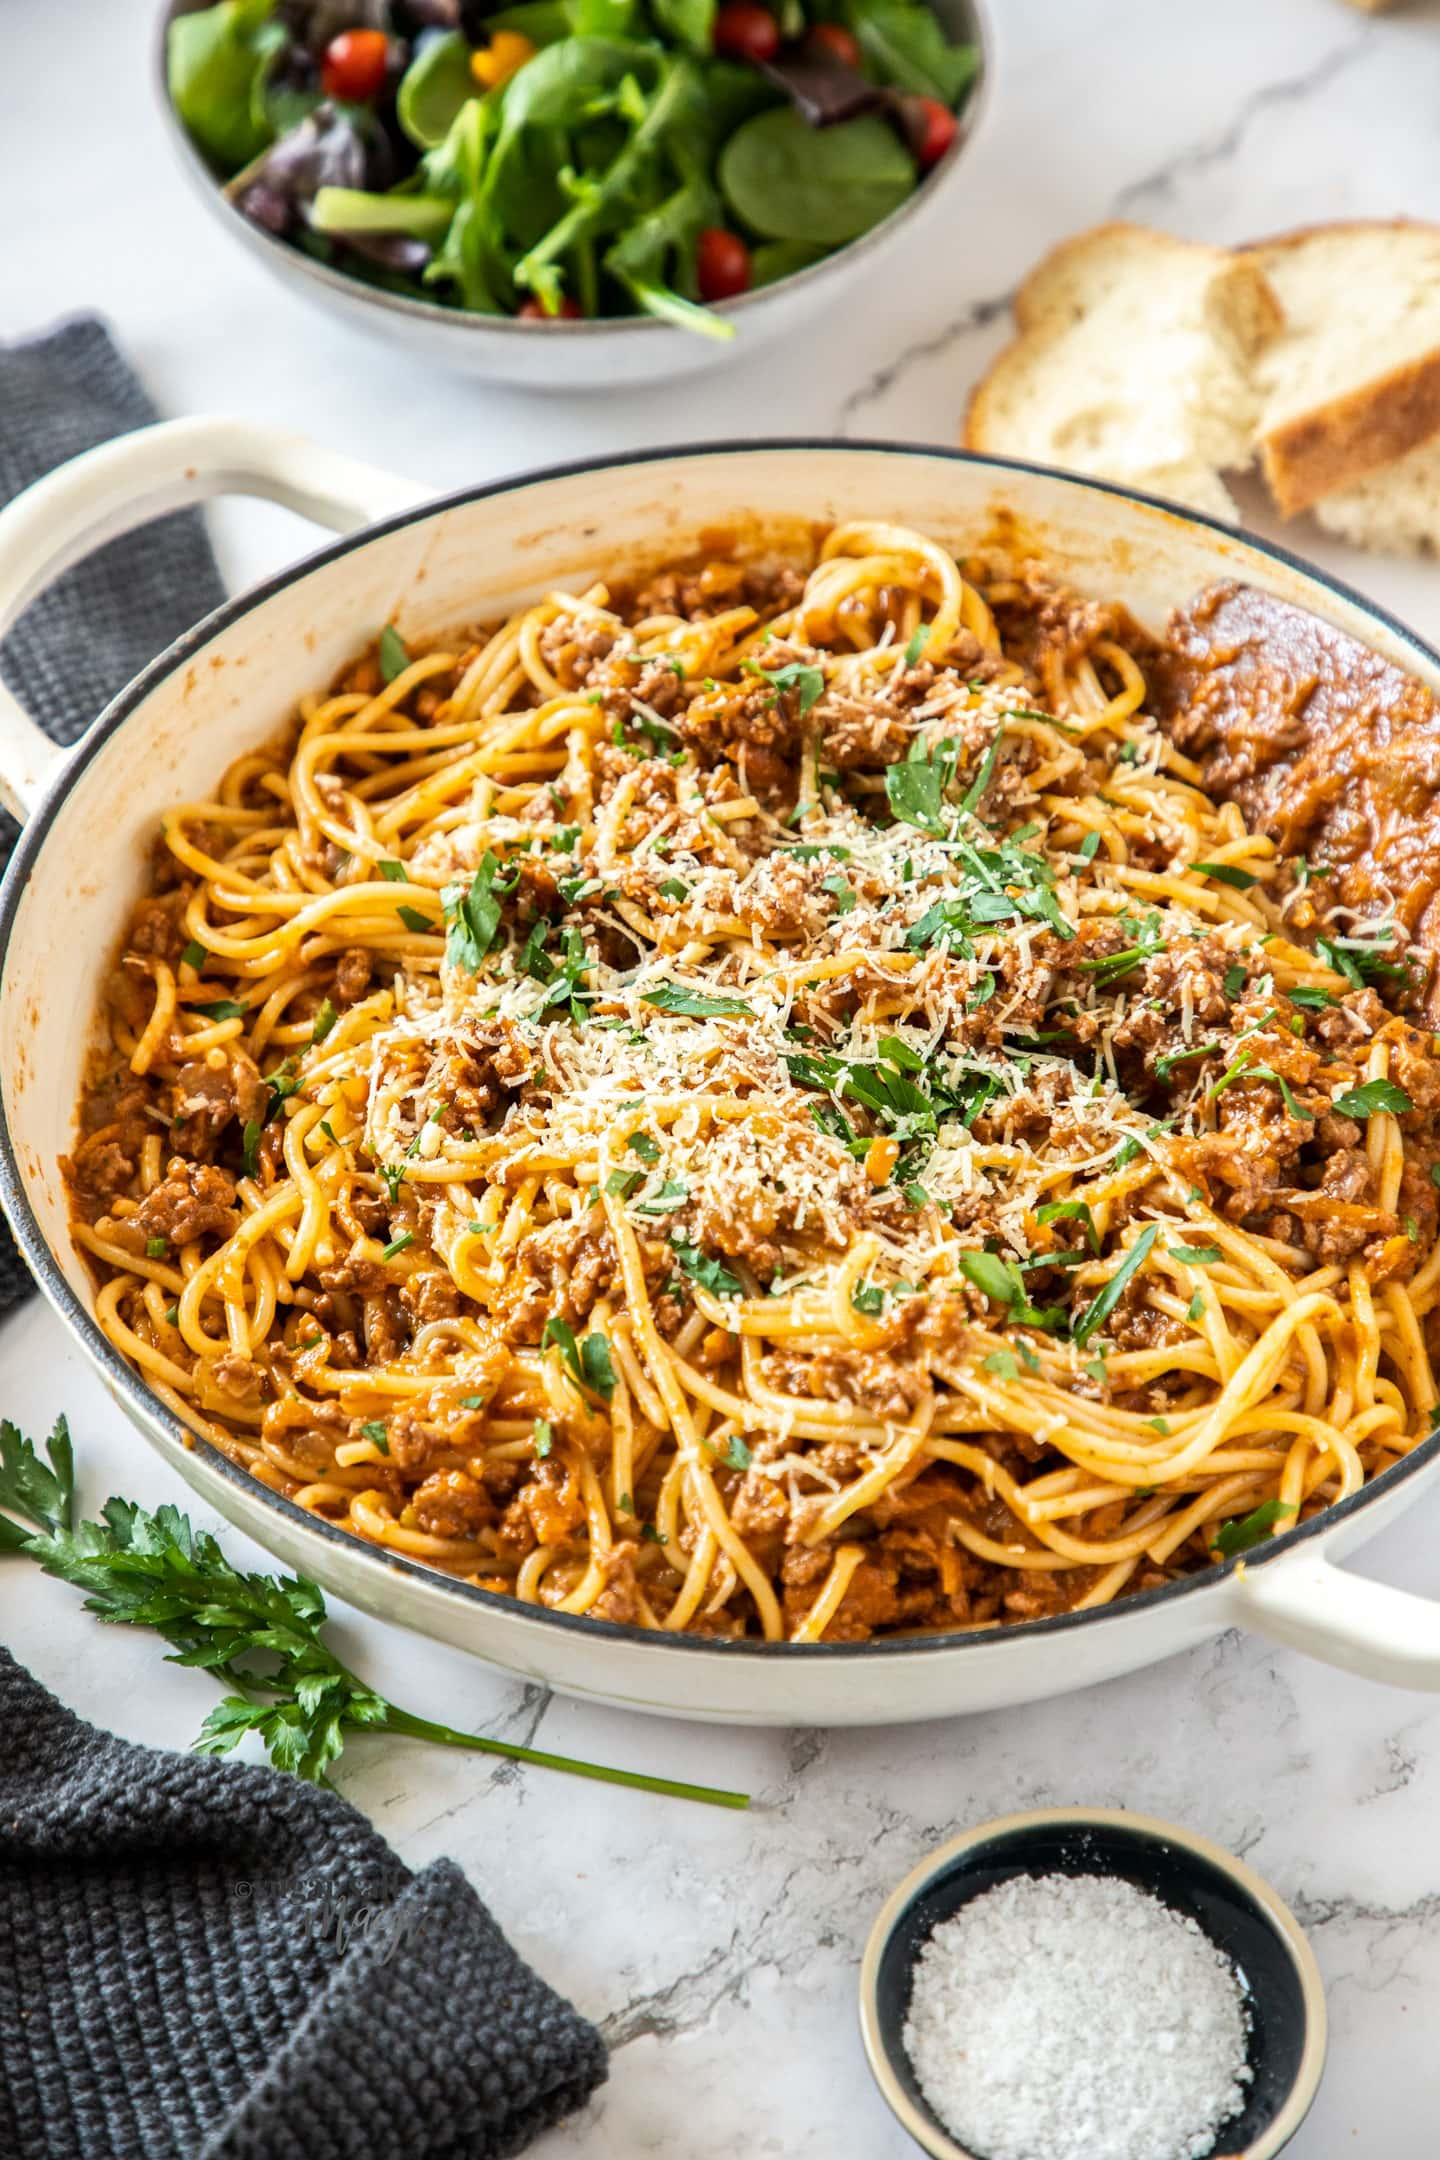 A white casserole dish filled with spaghetti bolognese